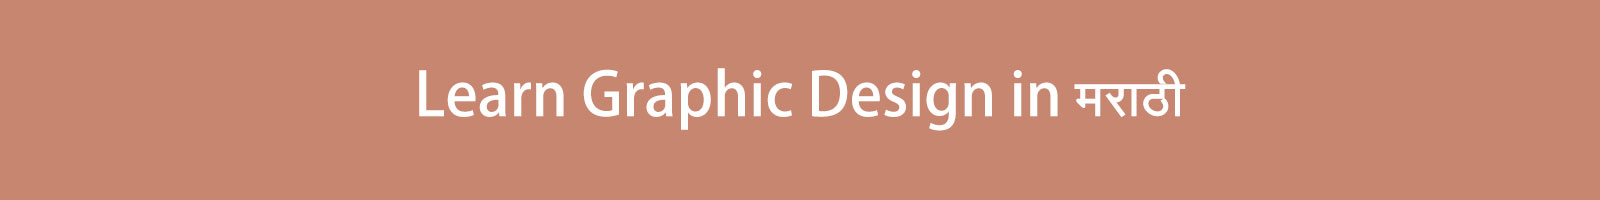 Learn Graphic Design